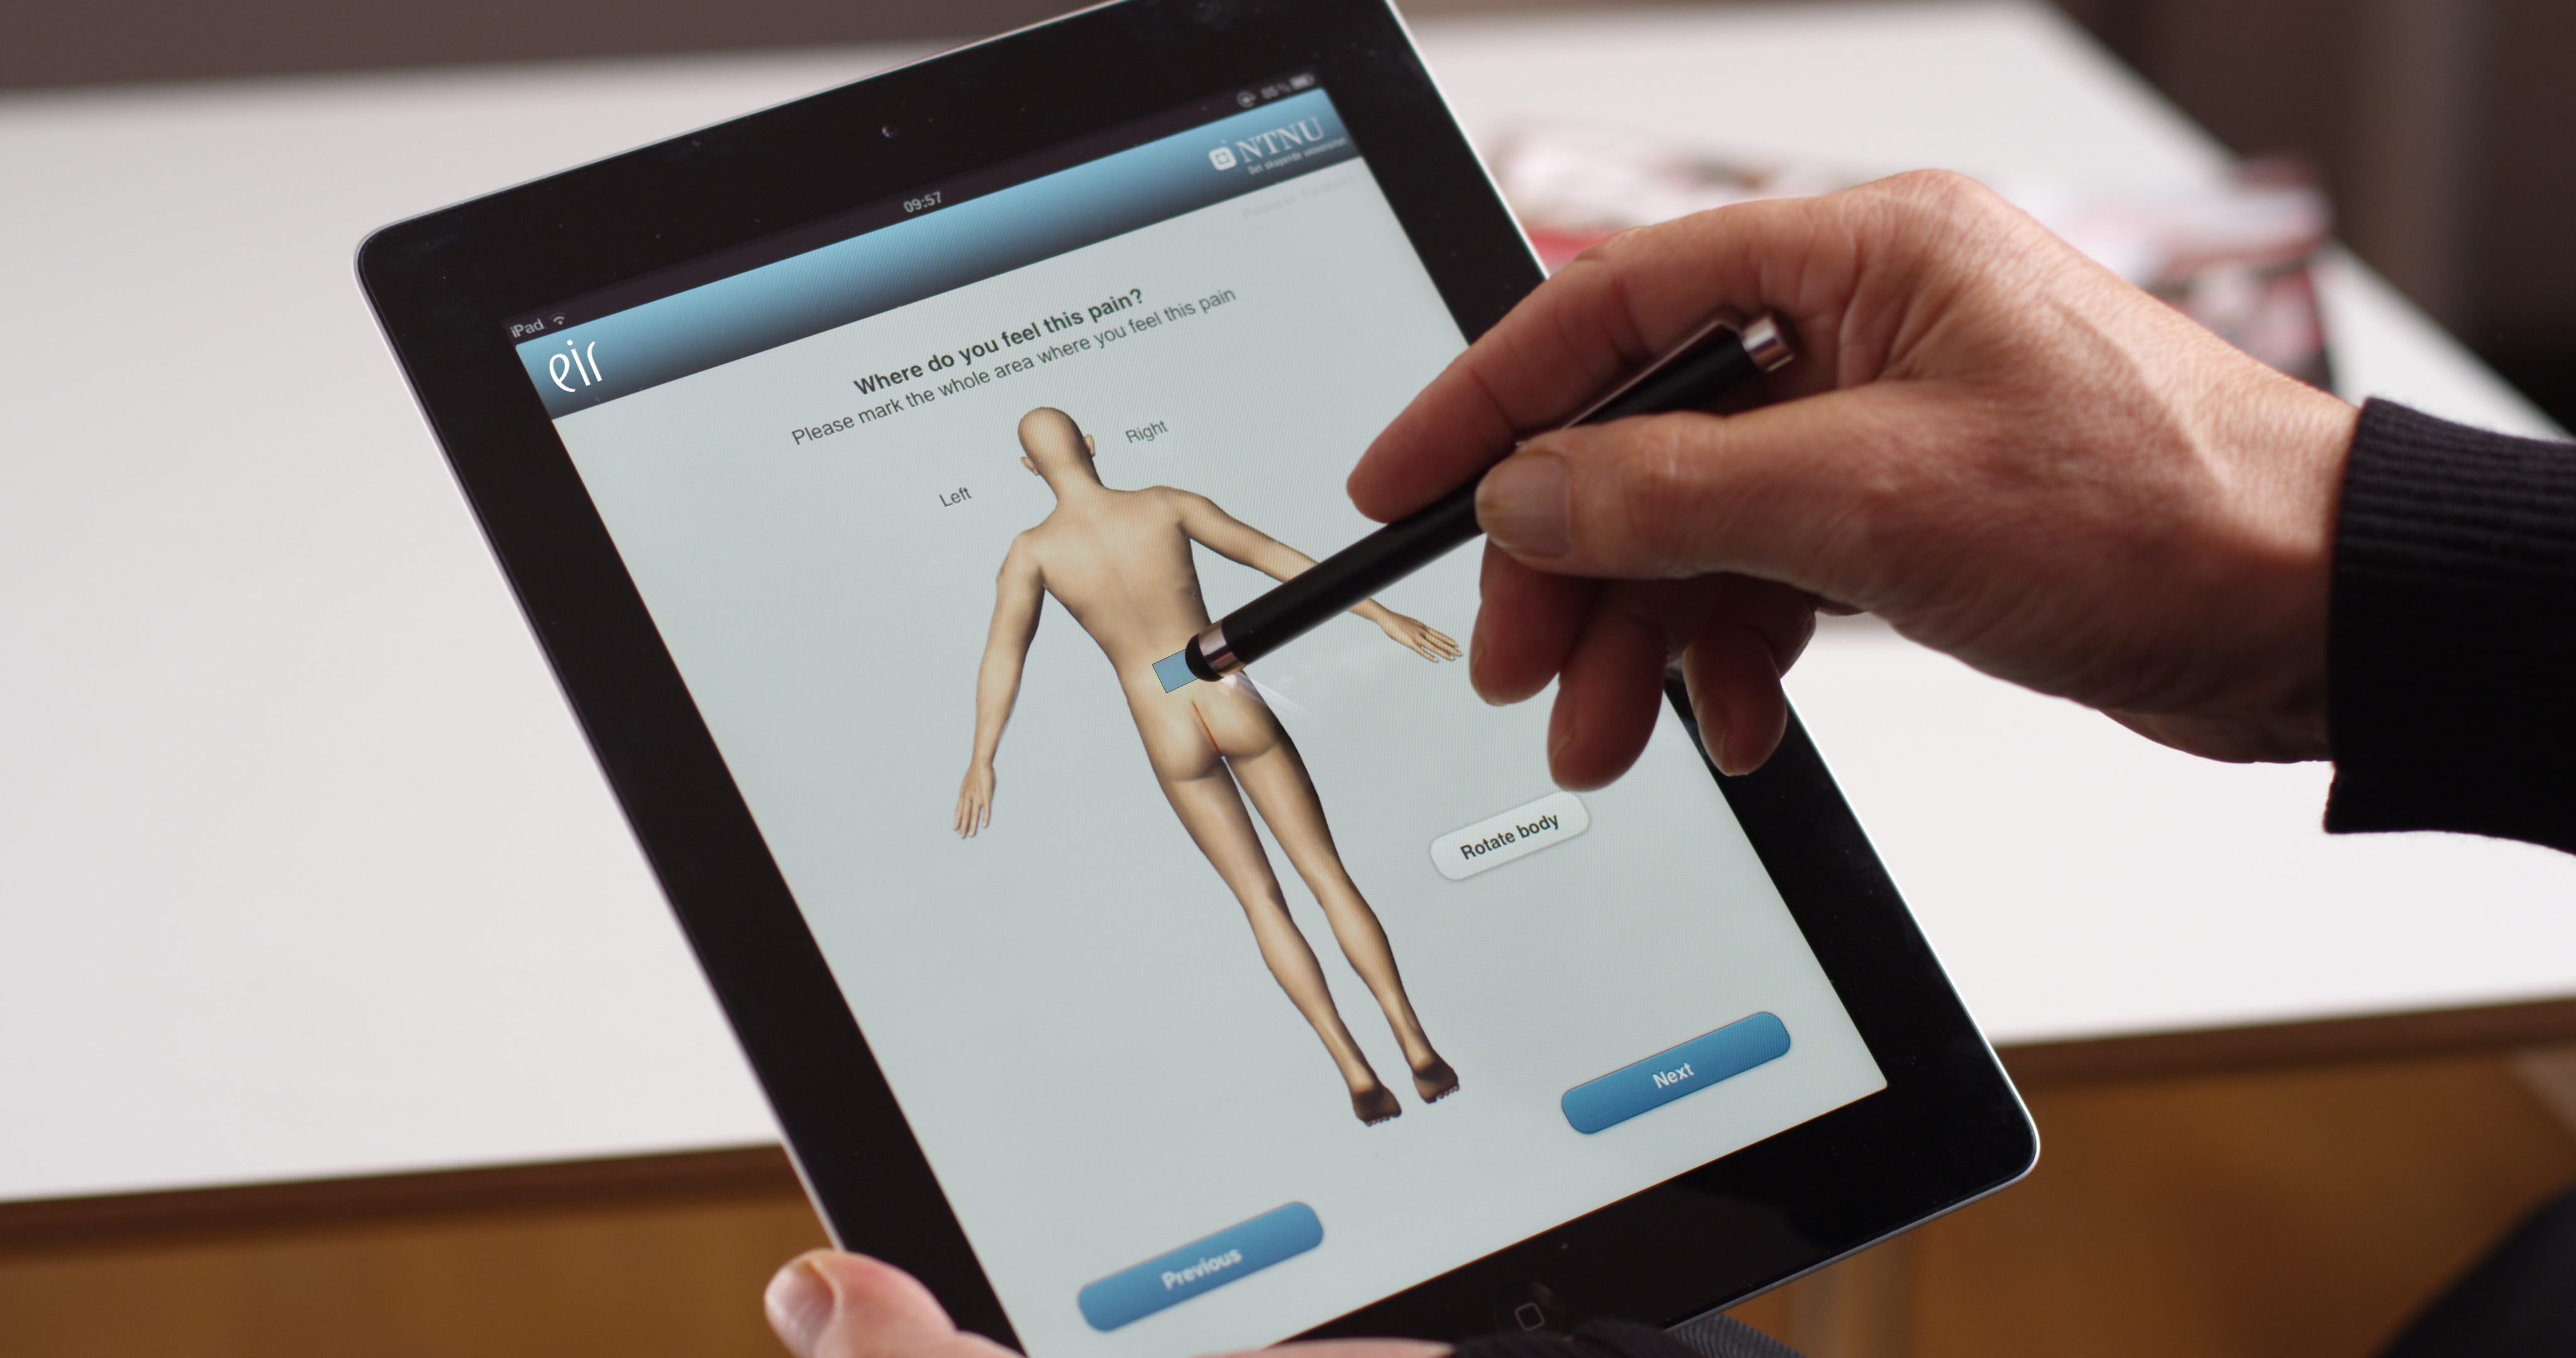 EIR is tablet software that helps patients describe their pain.